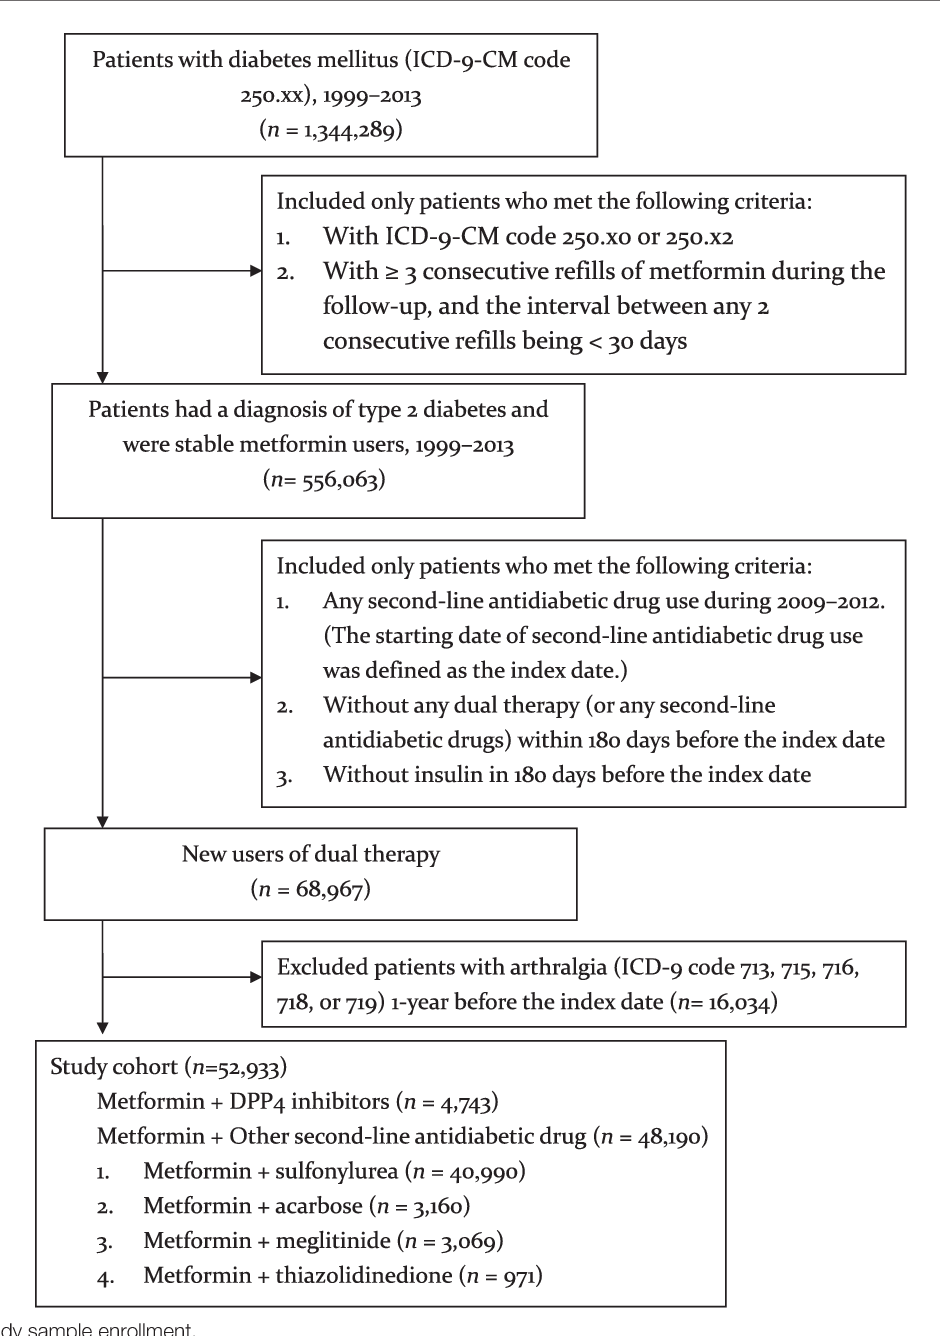 Dipeptidyl Peptidase 4 Inhibitor Use Is Not Associated With Elevated Risk Of Severe Joint Pain In Patients Type 2 Diabetes A Population Based Cohort